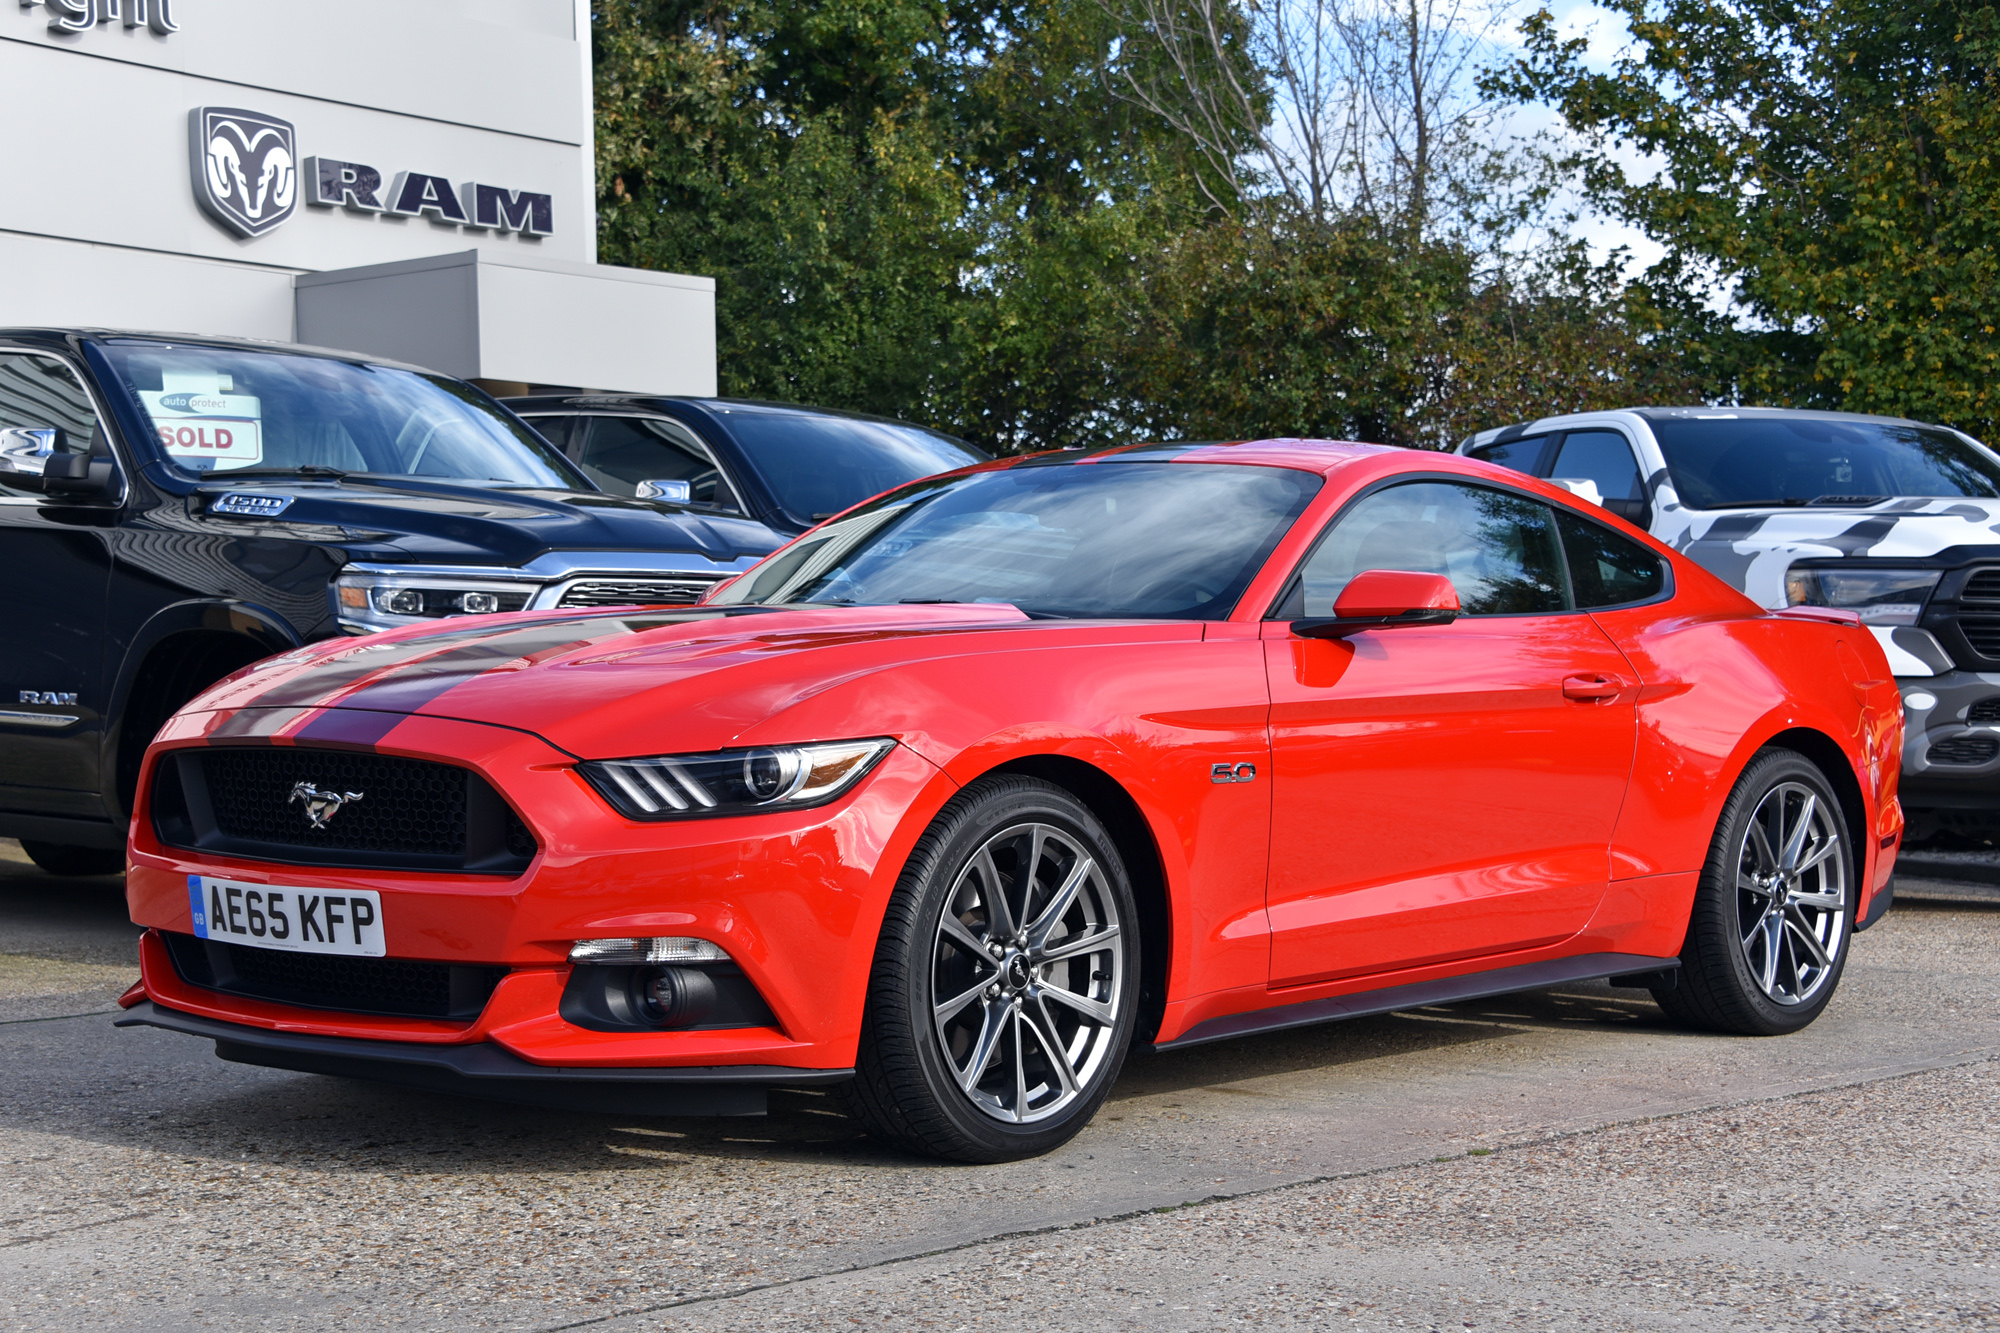 Ford Mustang GT Auto Premium UK